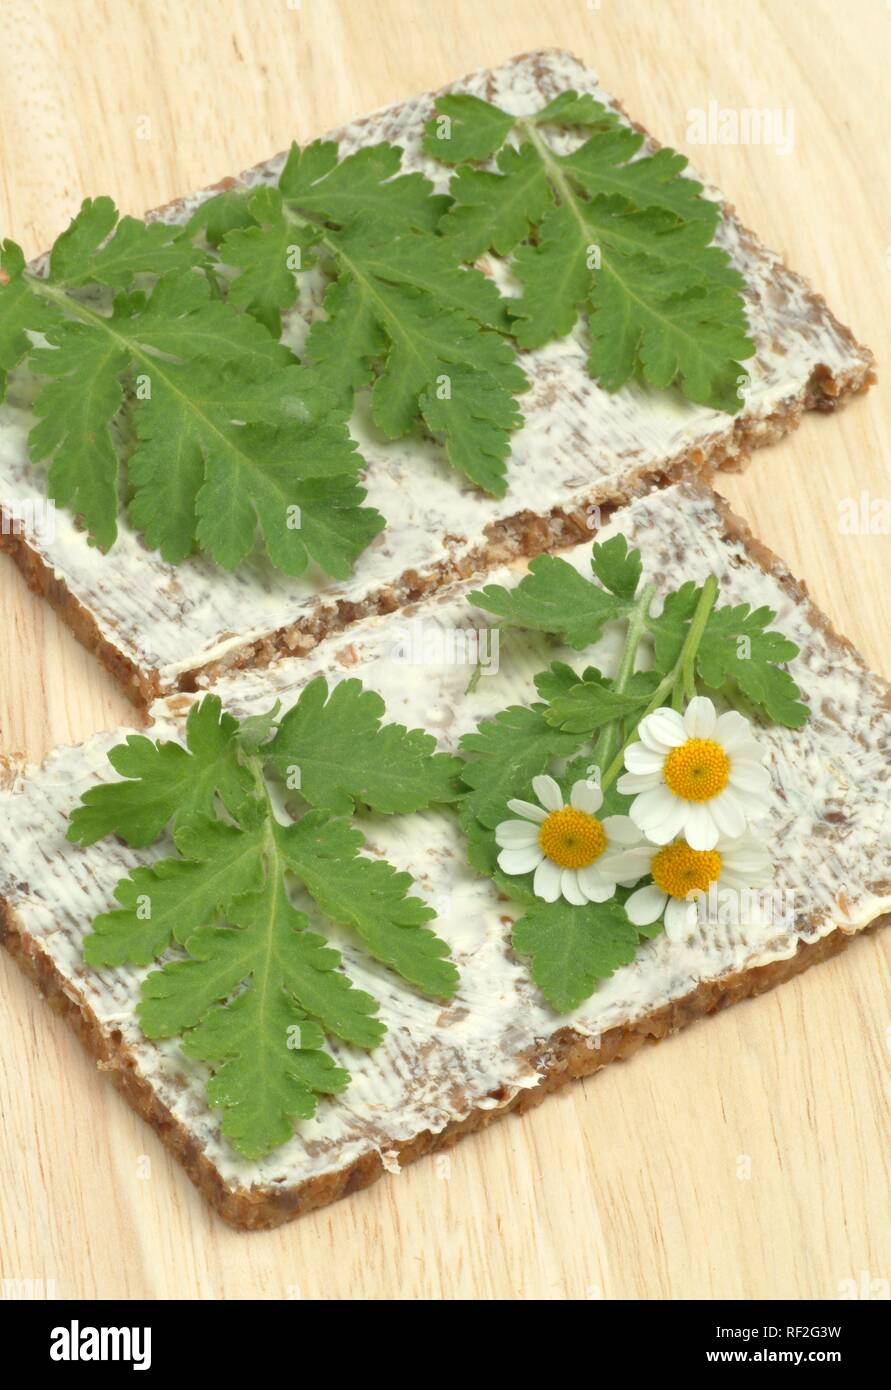 Feverfew (Chrysanthemum parthenium), fresh leaves on buttered bread, medicinal herb used to treat migraines - Stock Image